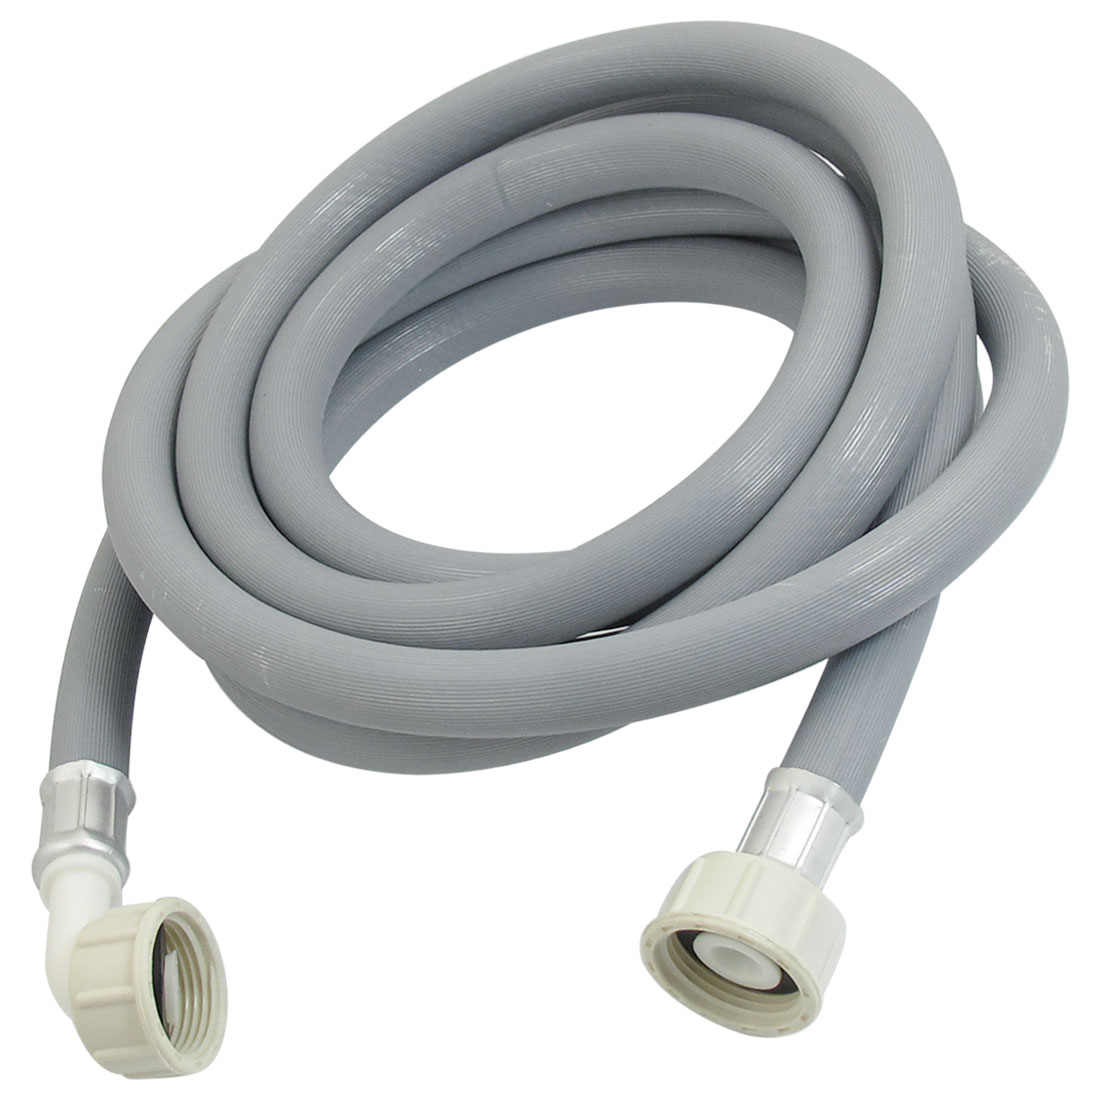 Gray 3 Meter Length Flexible European Water Inlet Hose Tube for Washing Machine